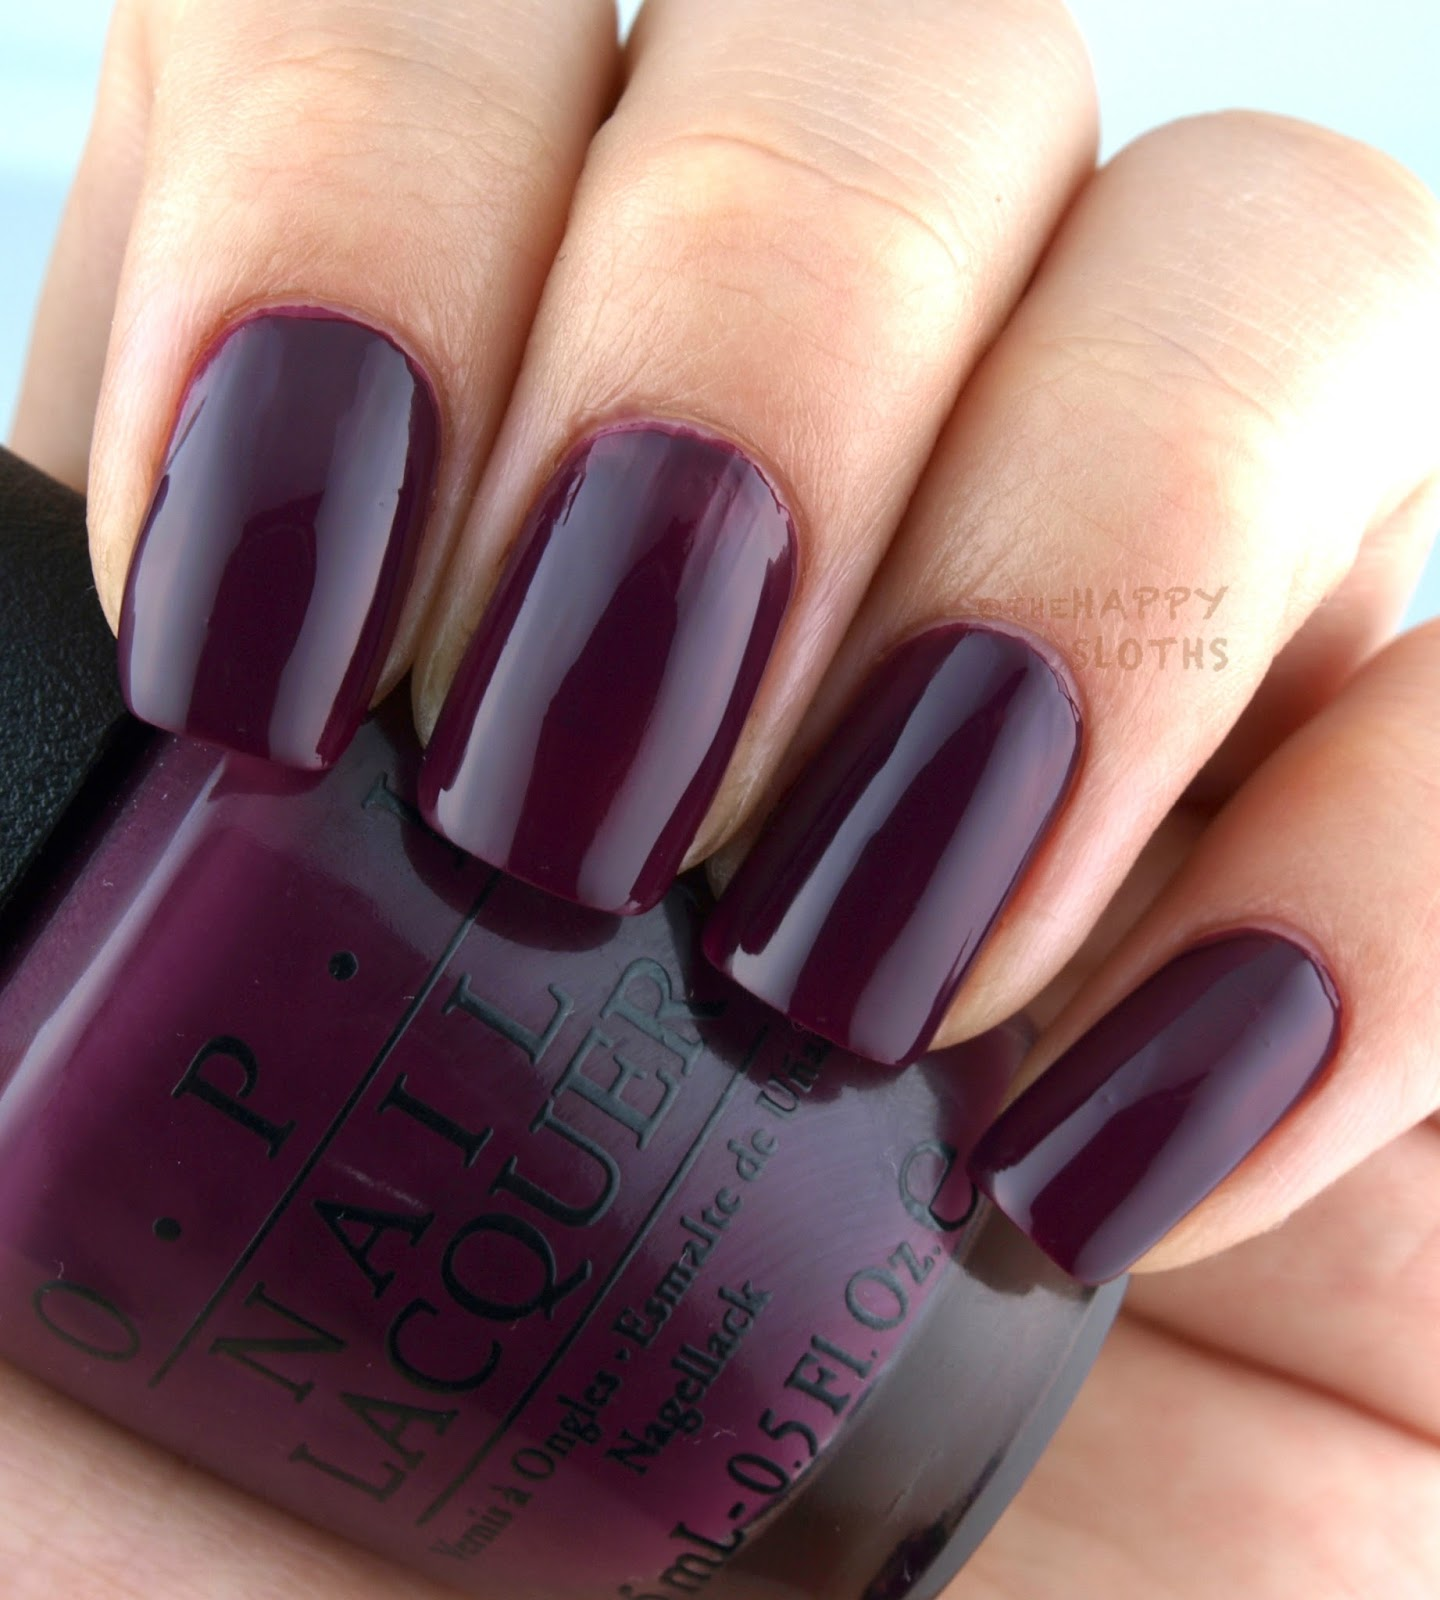 OPI Fall 2016 Washington DC Collection: Review and Swatches | The ...